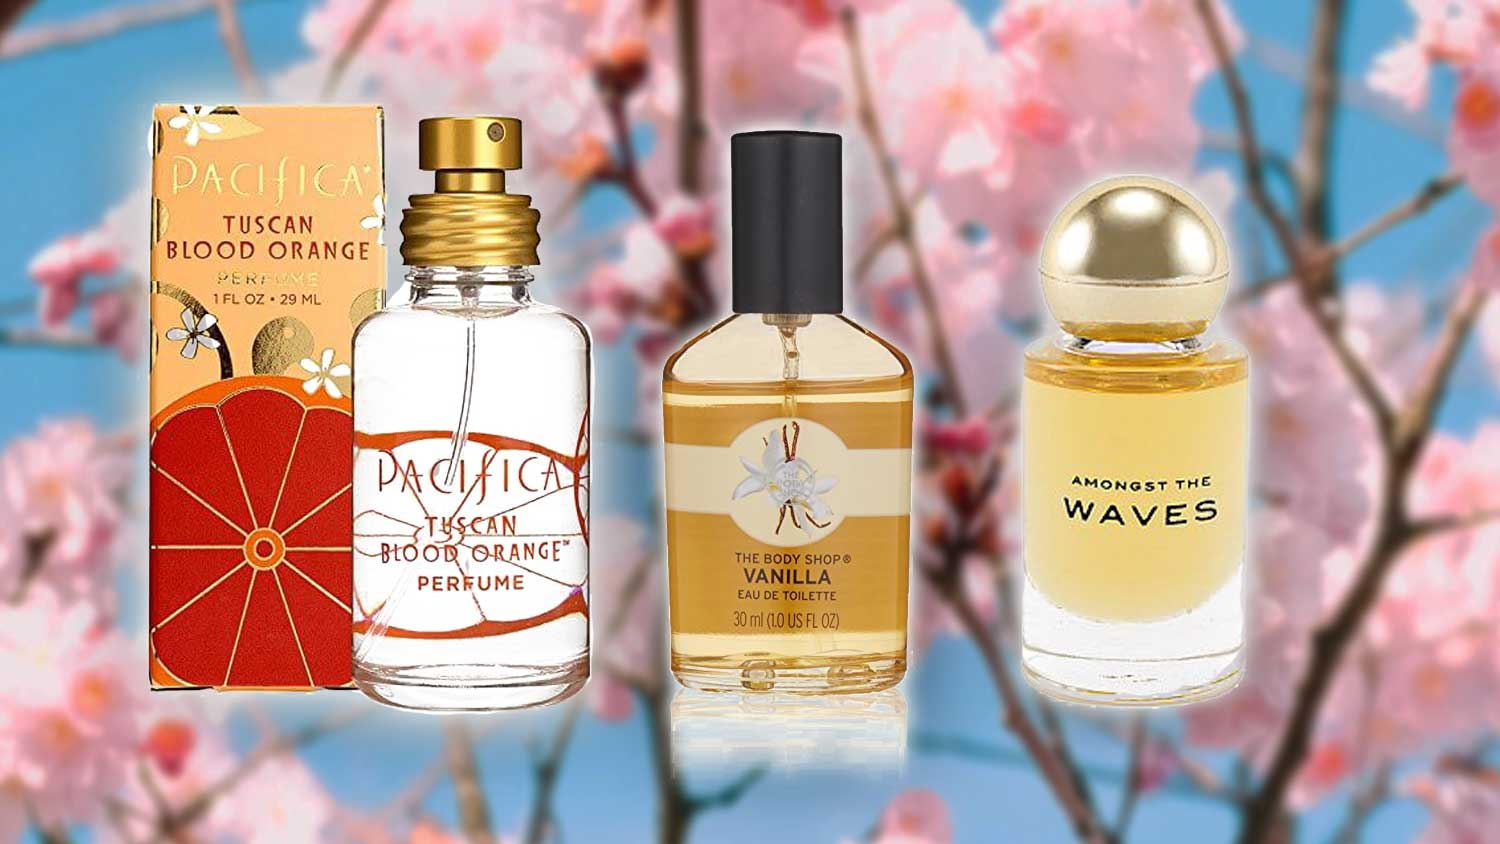 19 Best Vegan and Cruelty-Free Fragrances for Men, Women, and Every Gender